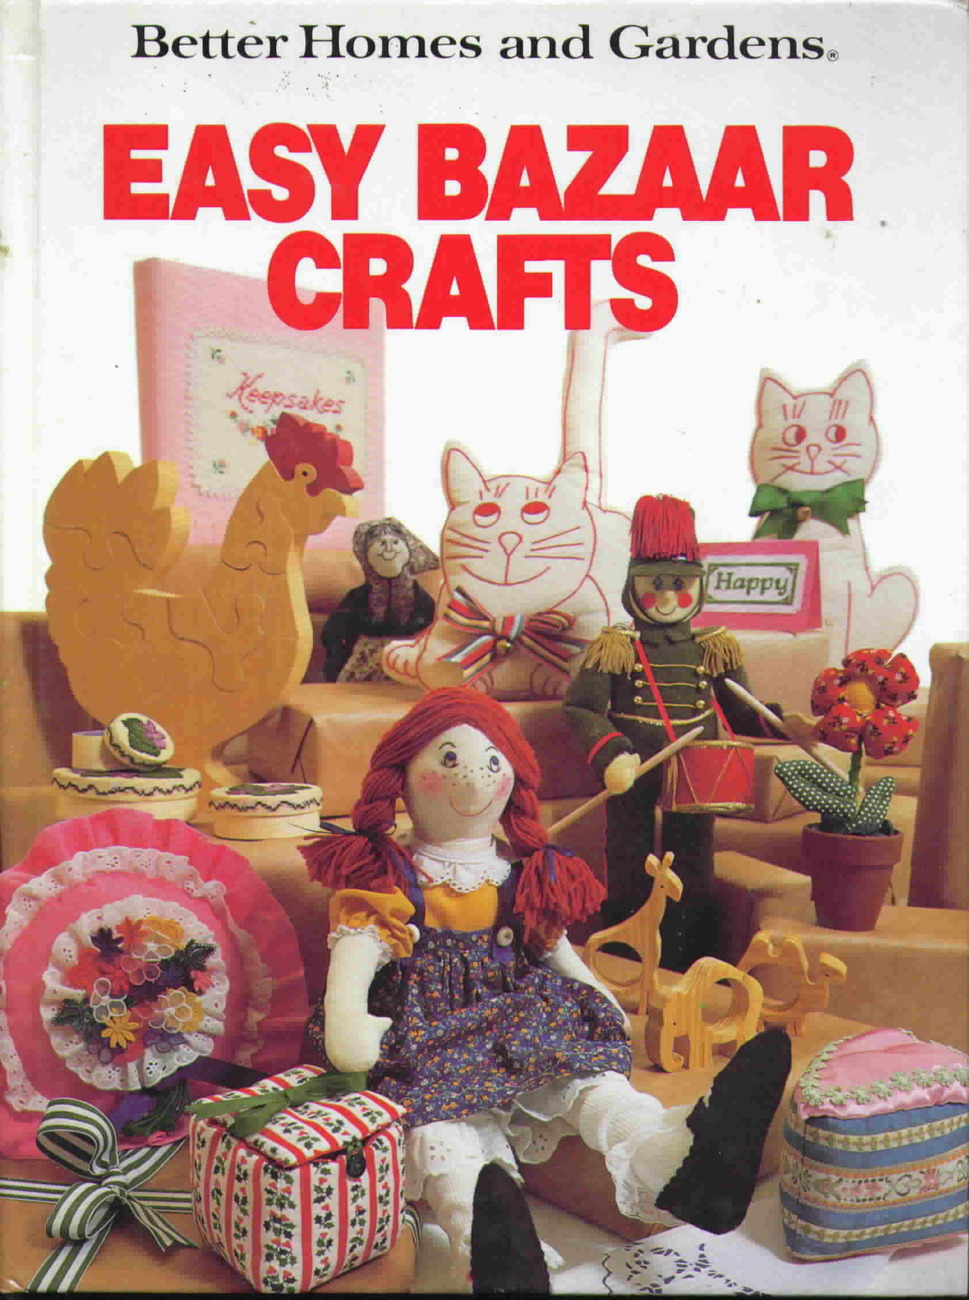 Better homes and gardens easy bazaar crafts